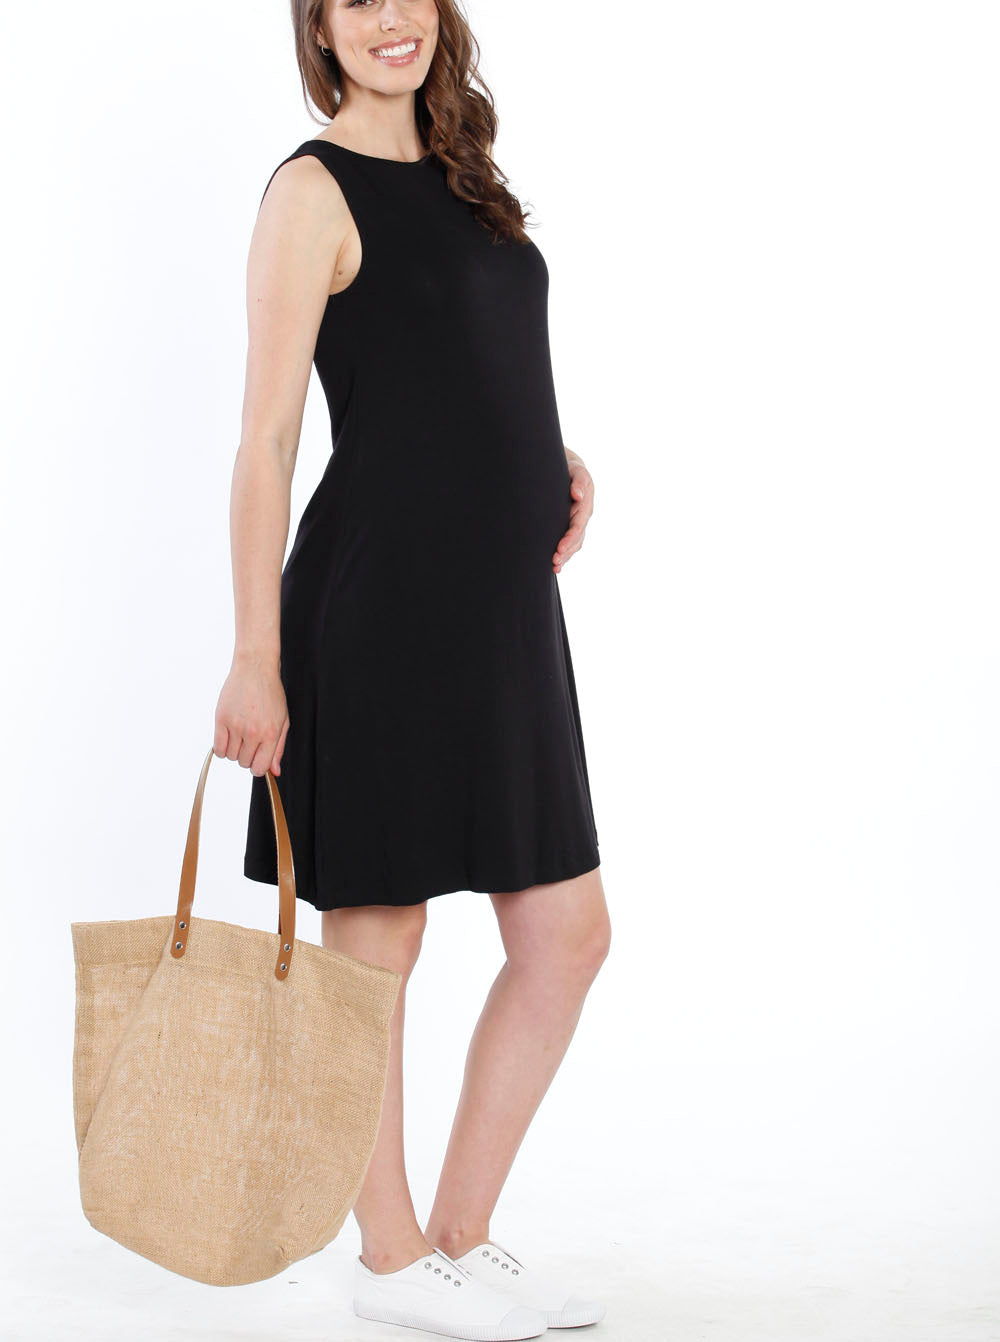 Maternity Shift Party Bow Details Dress - Black